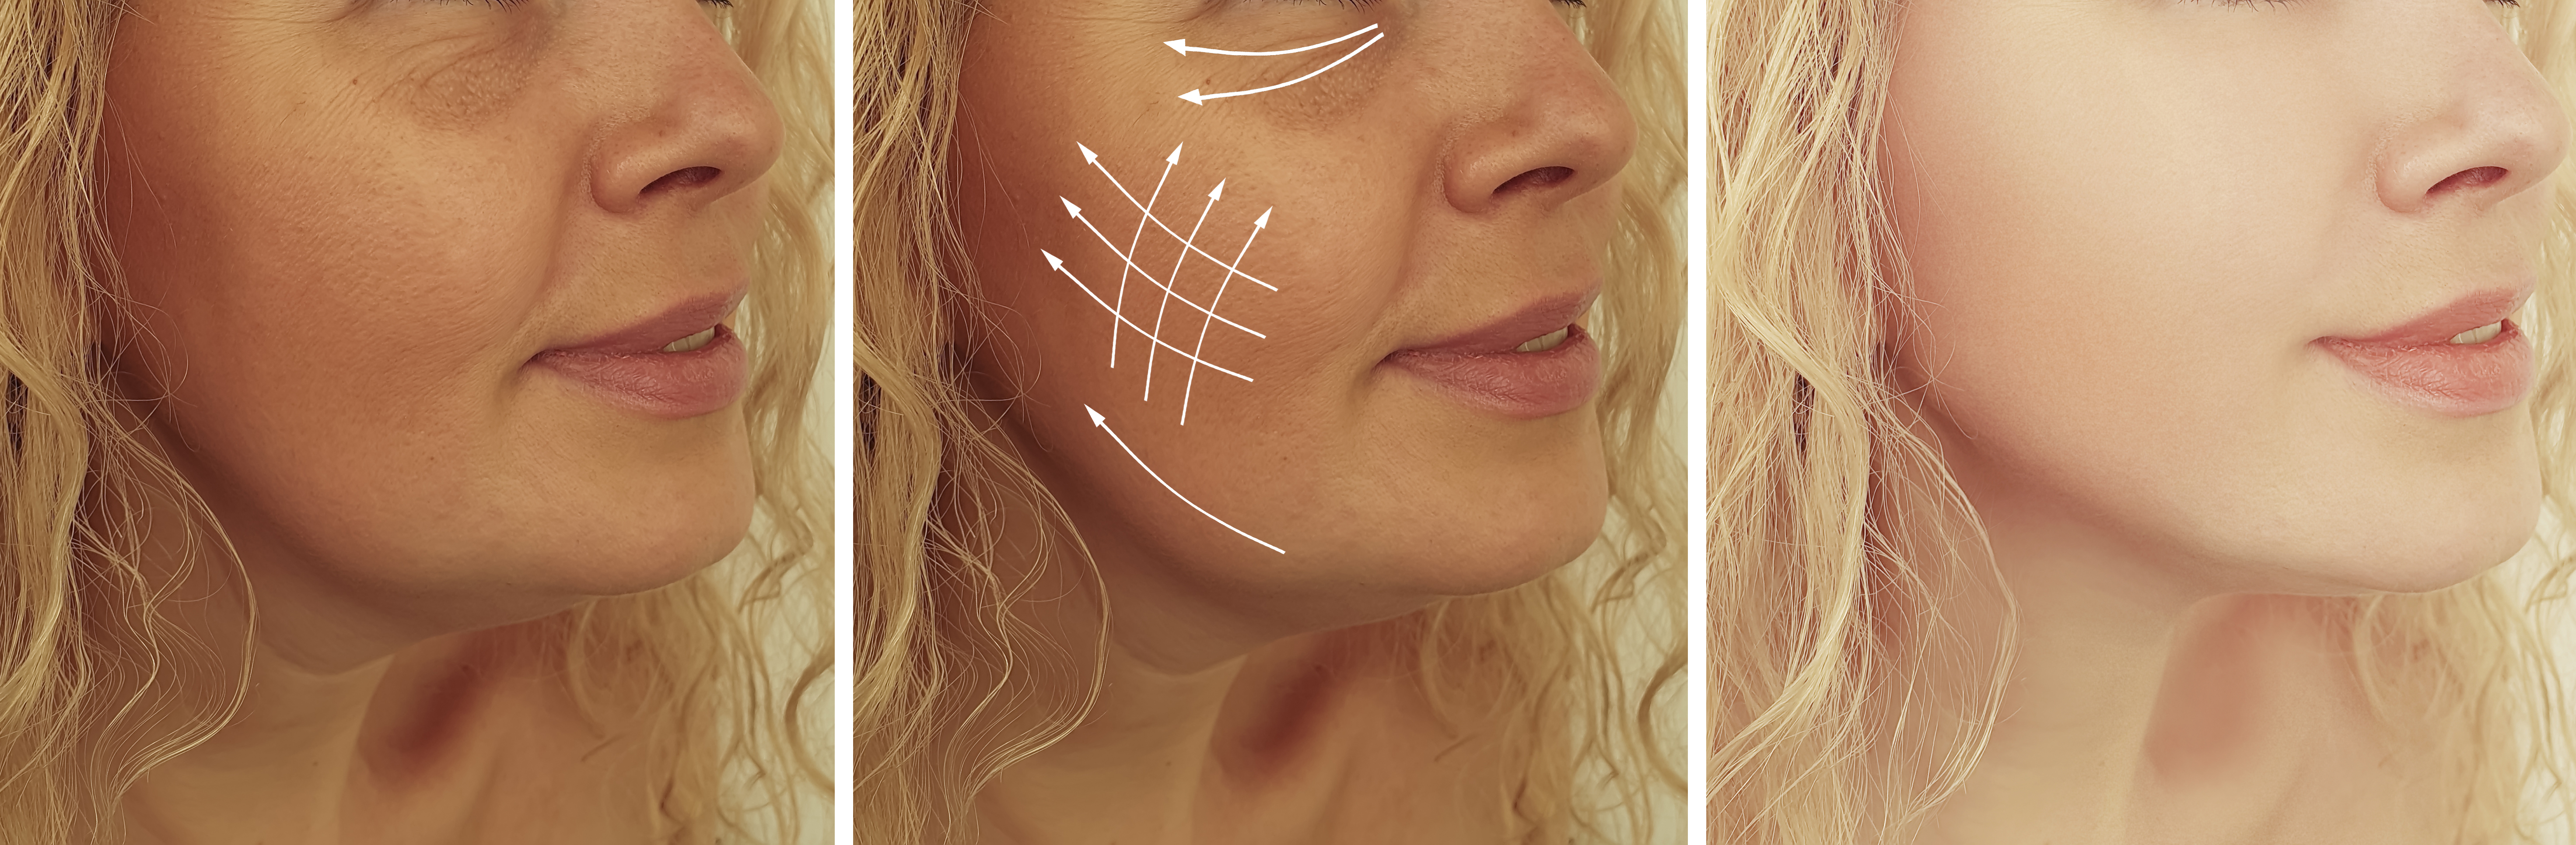 jowls formation affects pseudo double chin formation